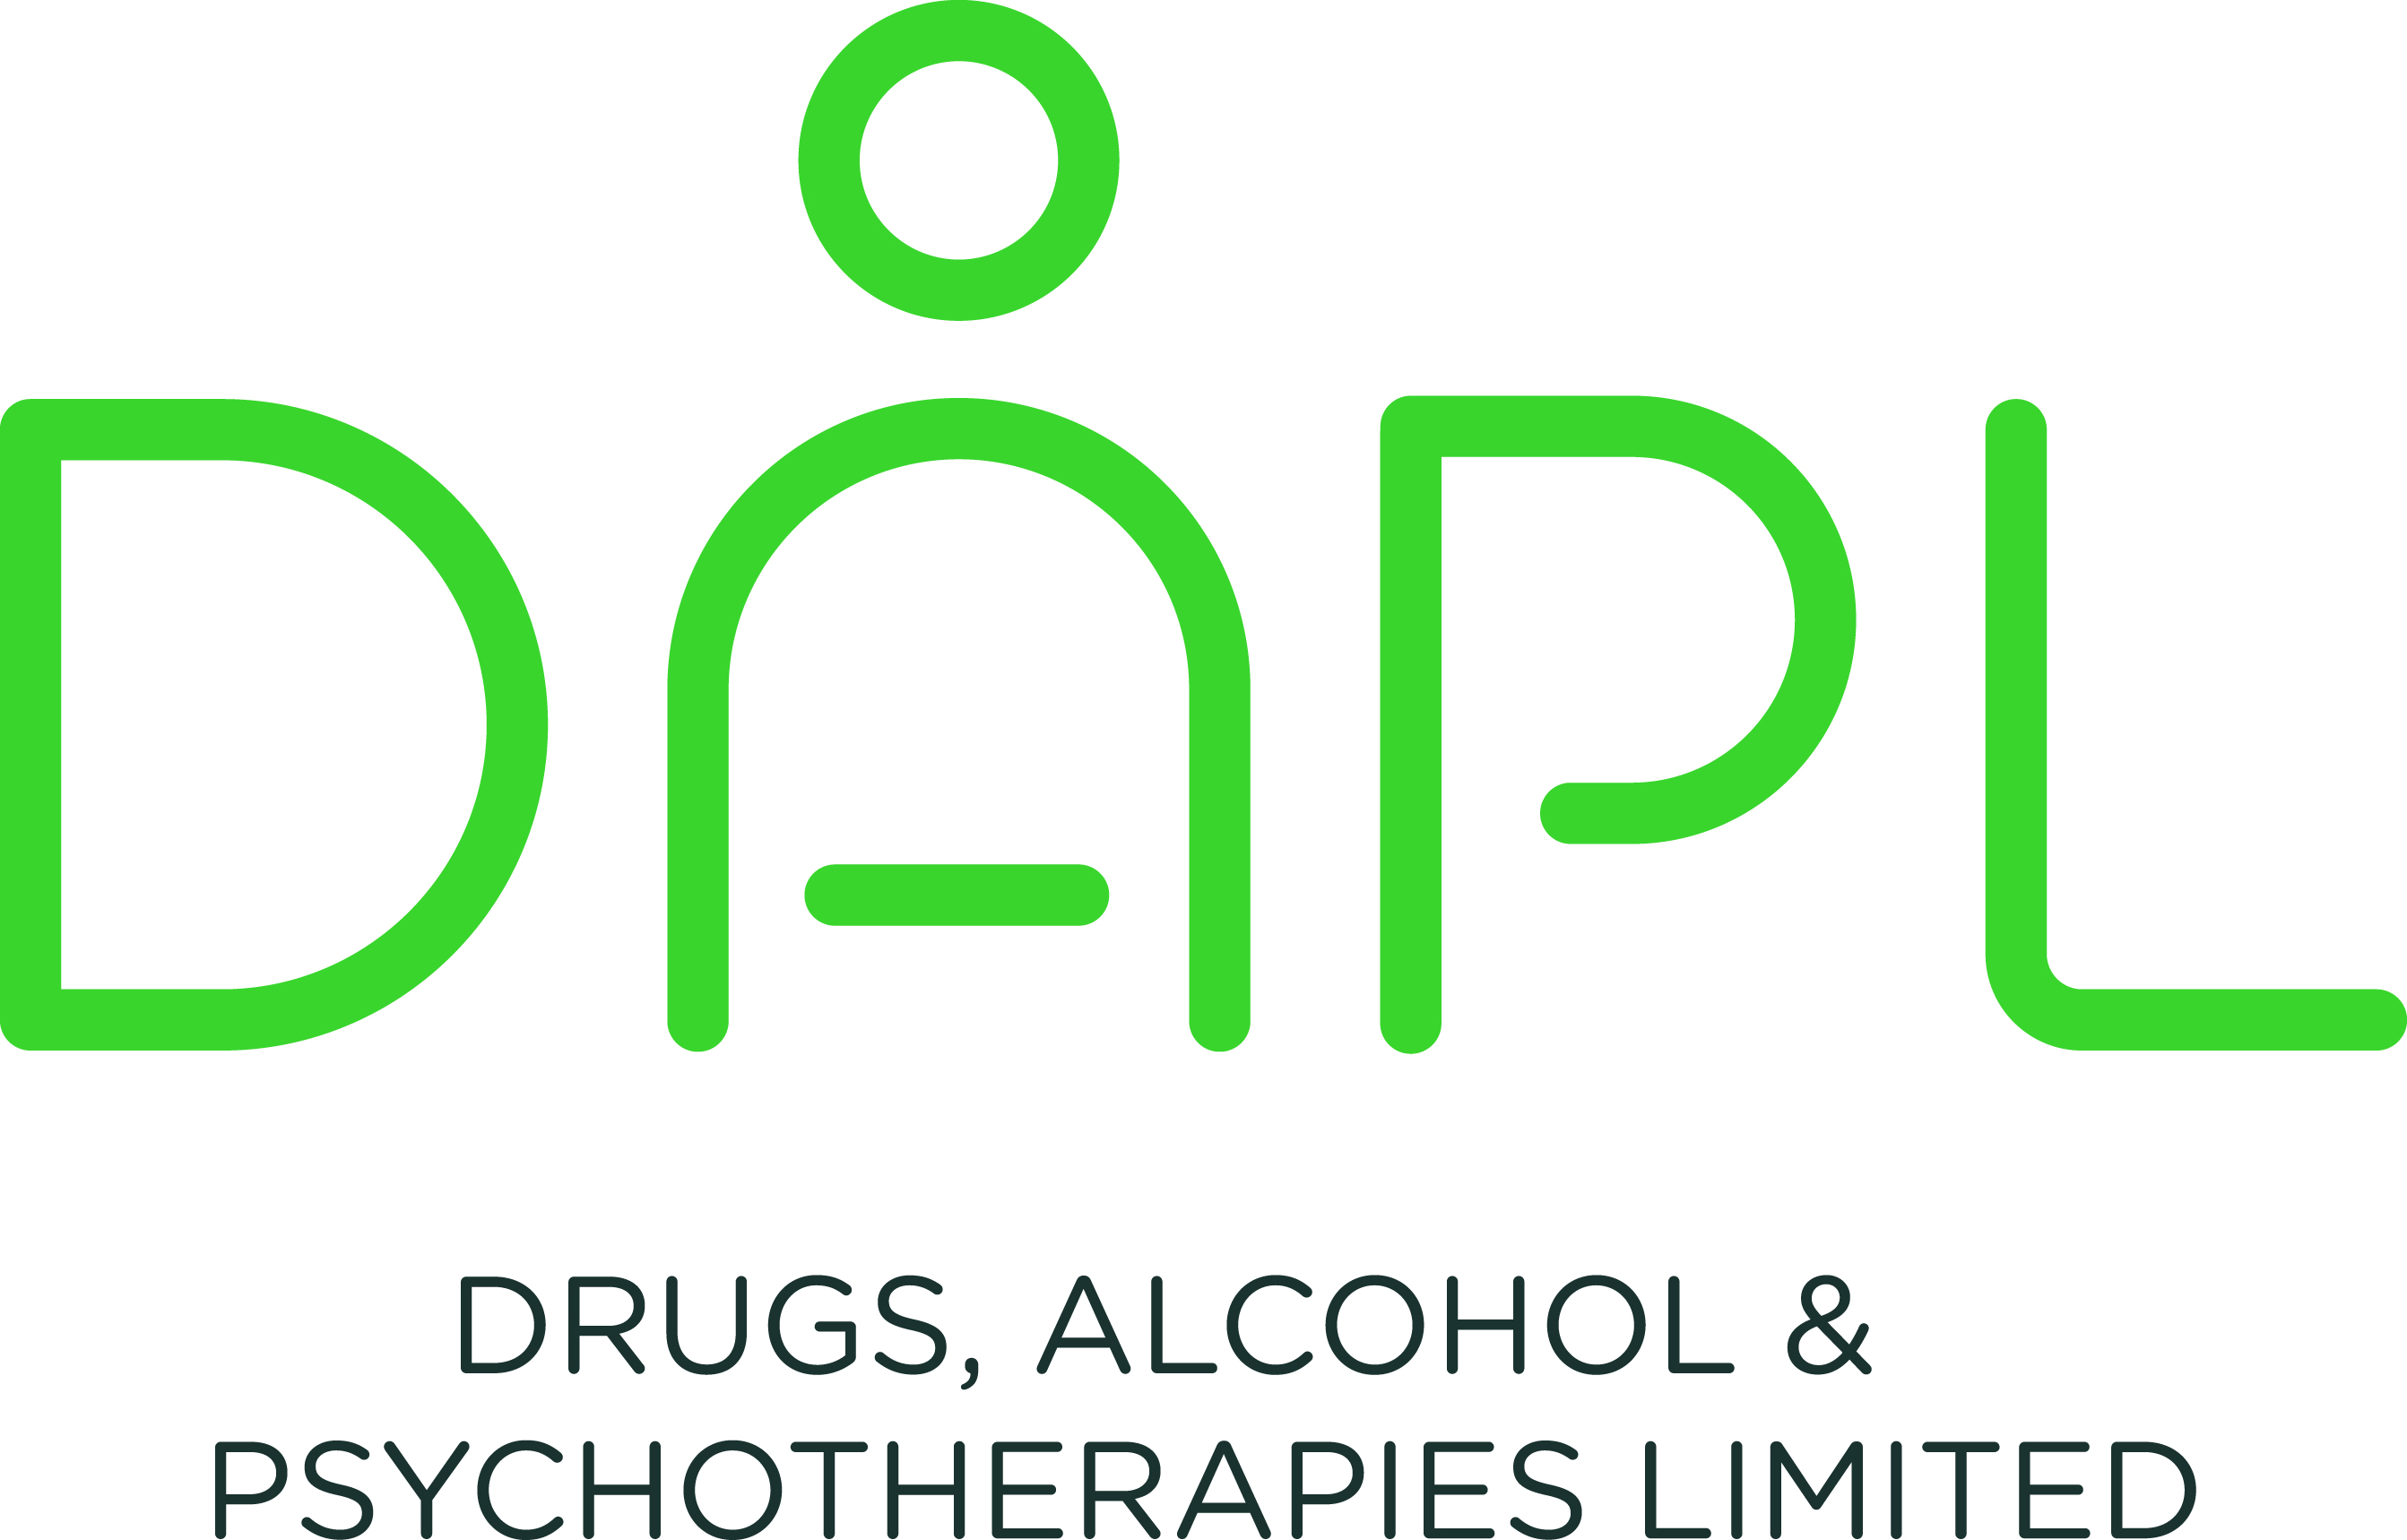 Drugs, Alcohol and Psychotherapies Limited (DAPL)